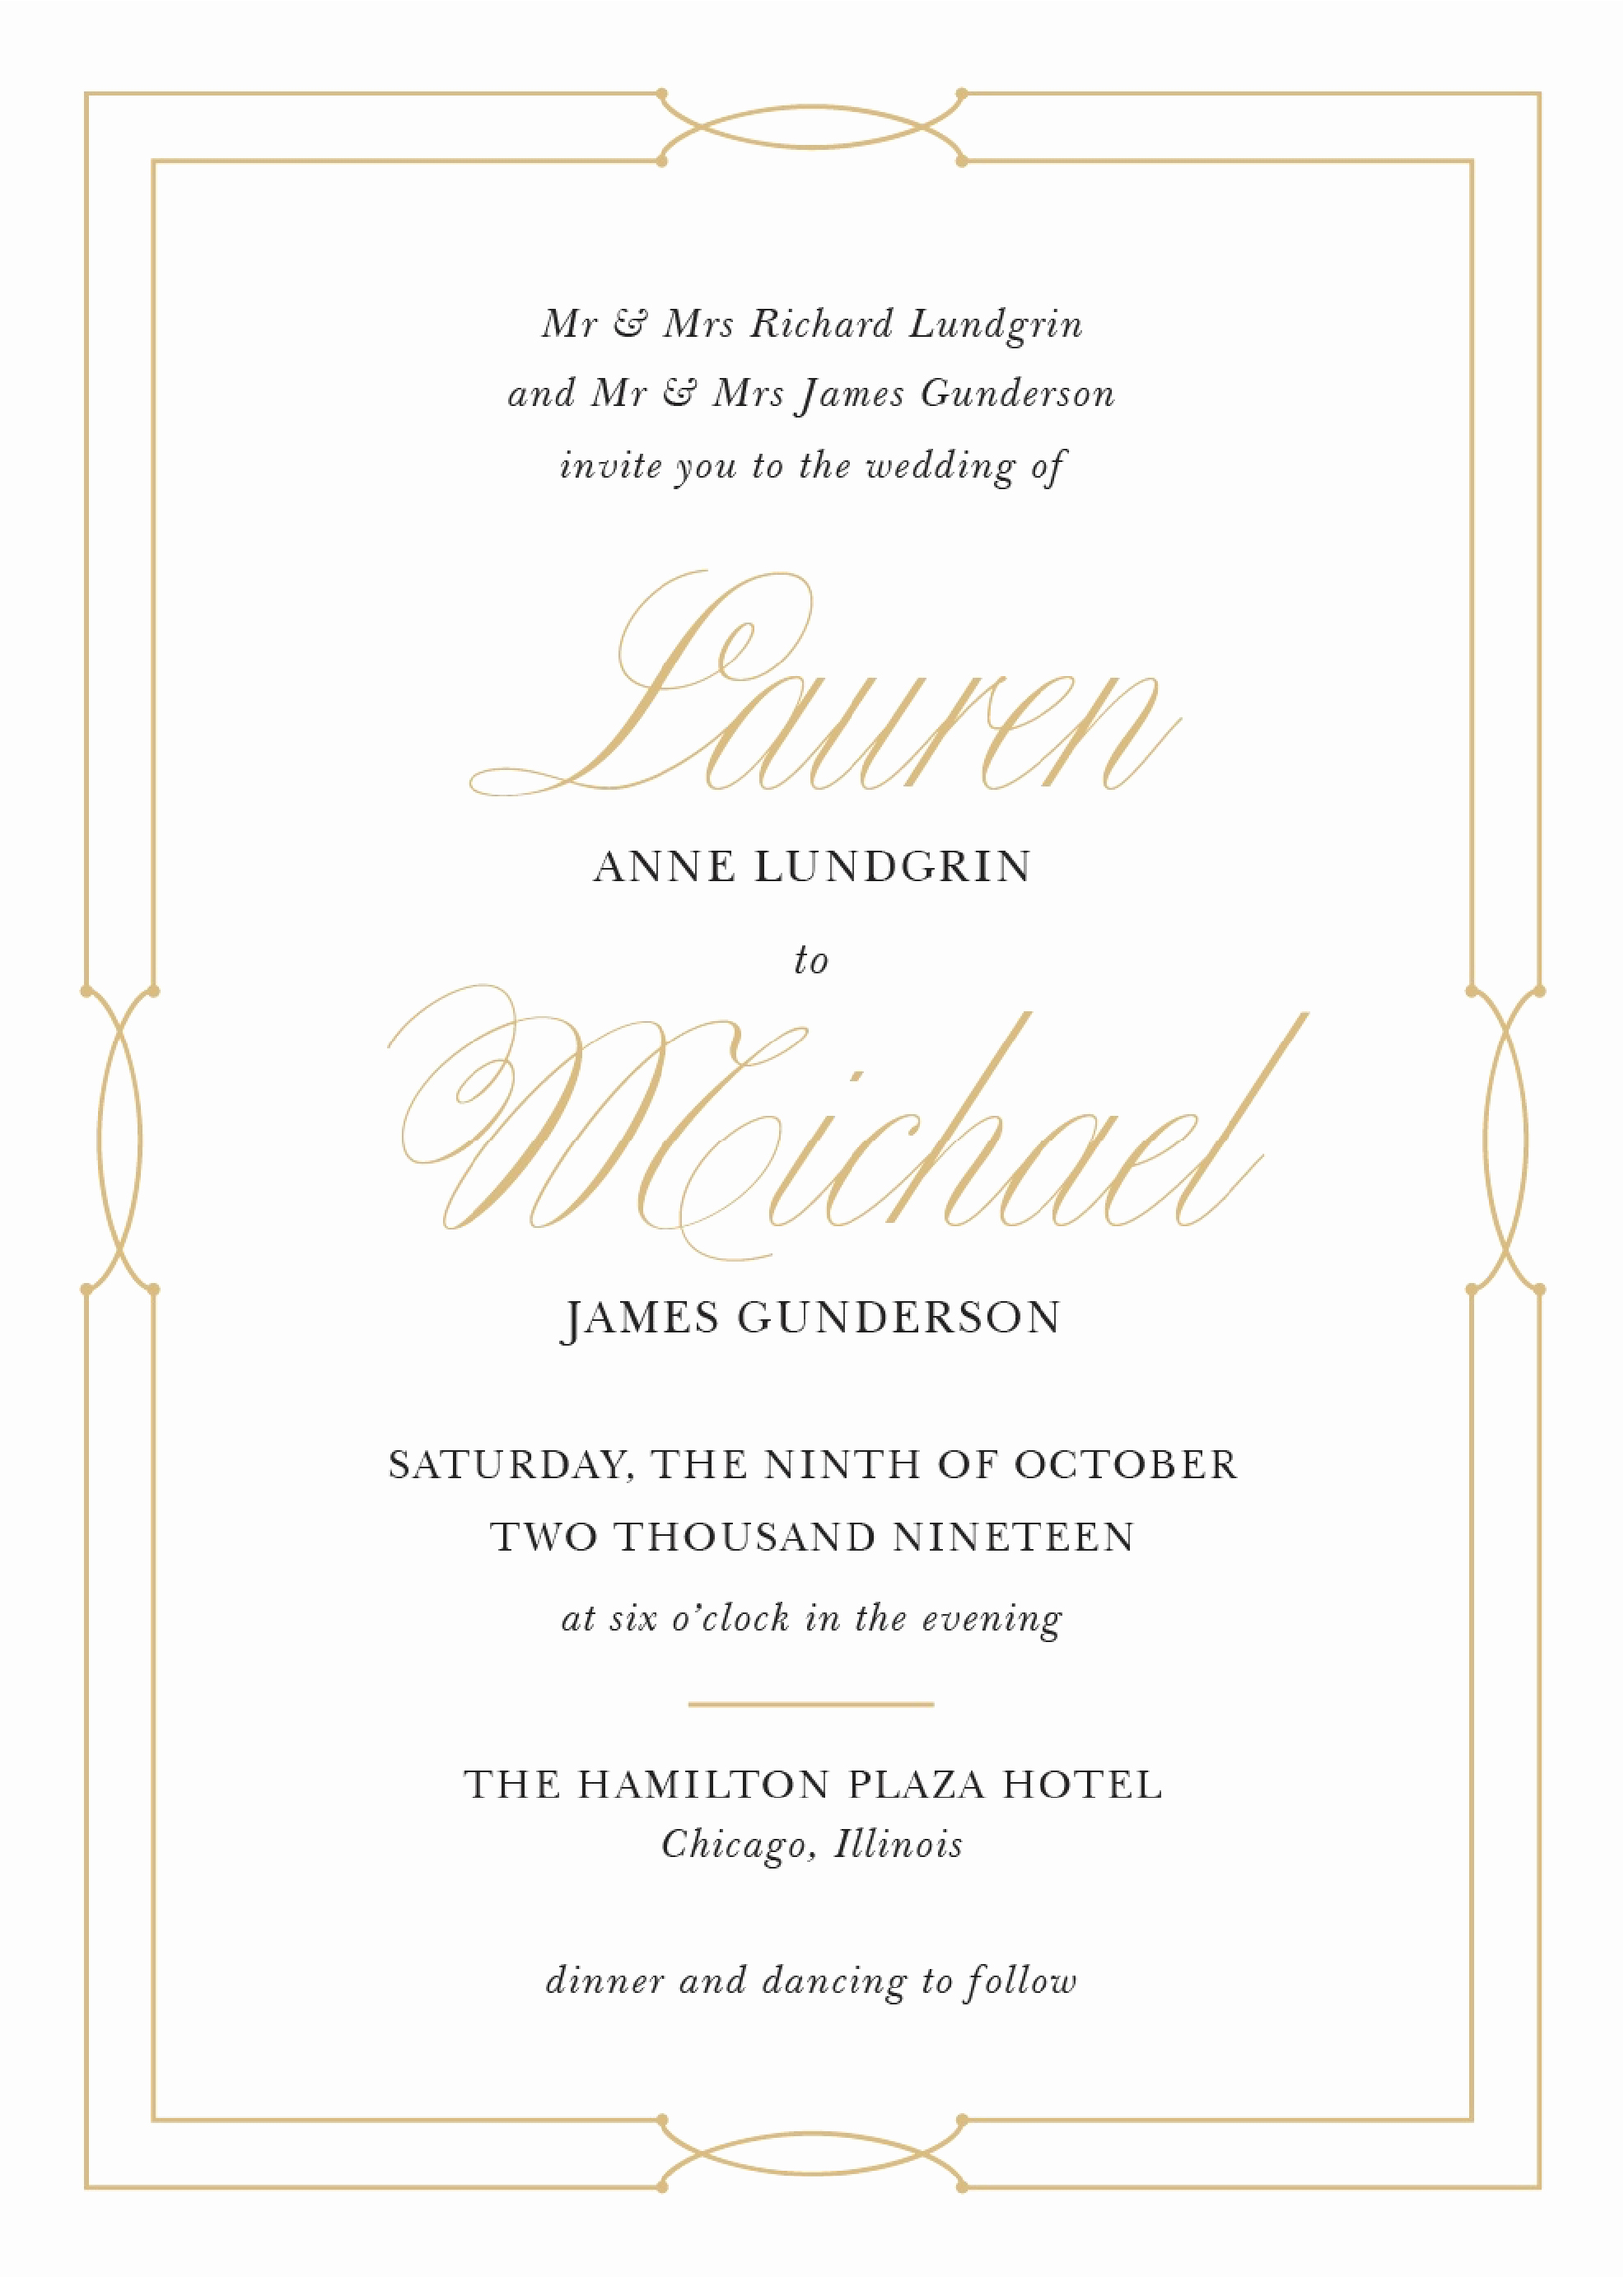 Second Marriage Invitation Wording Best Of Wedding Invitation Wording Samples